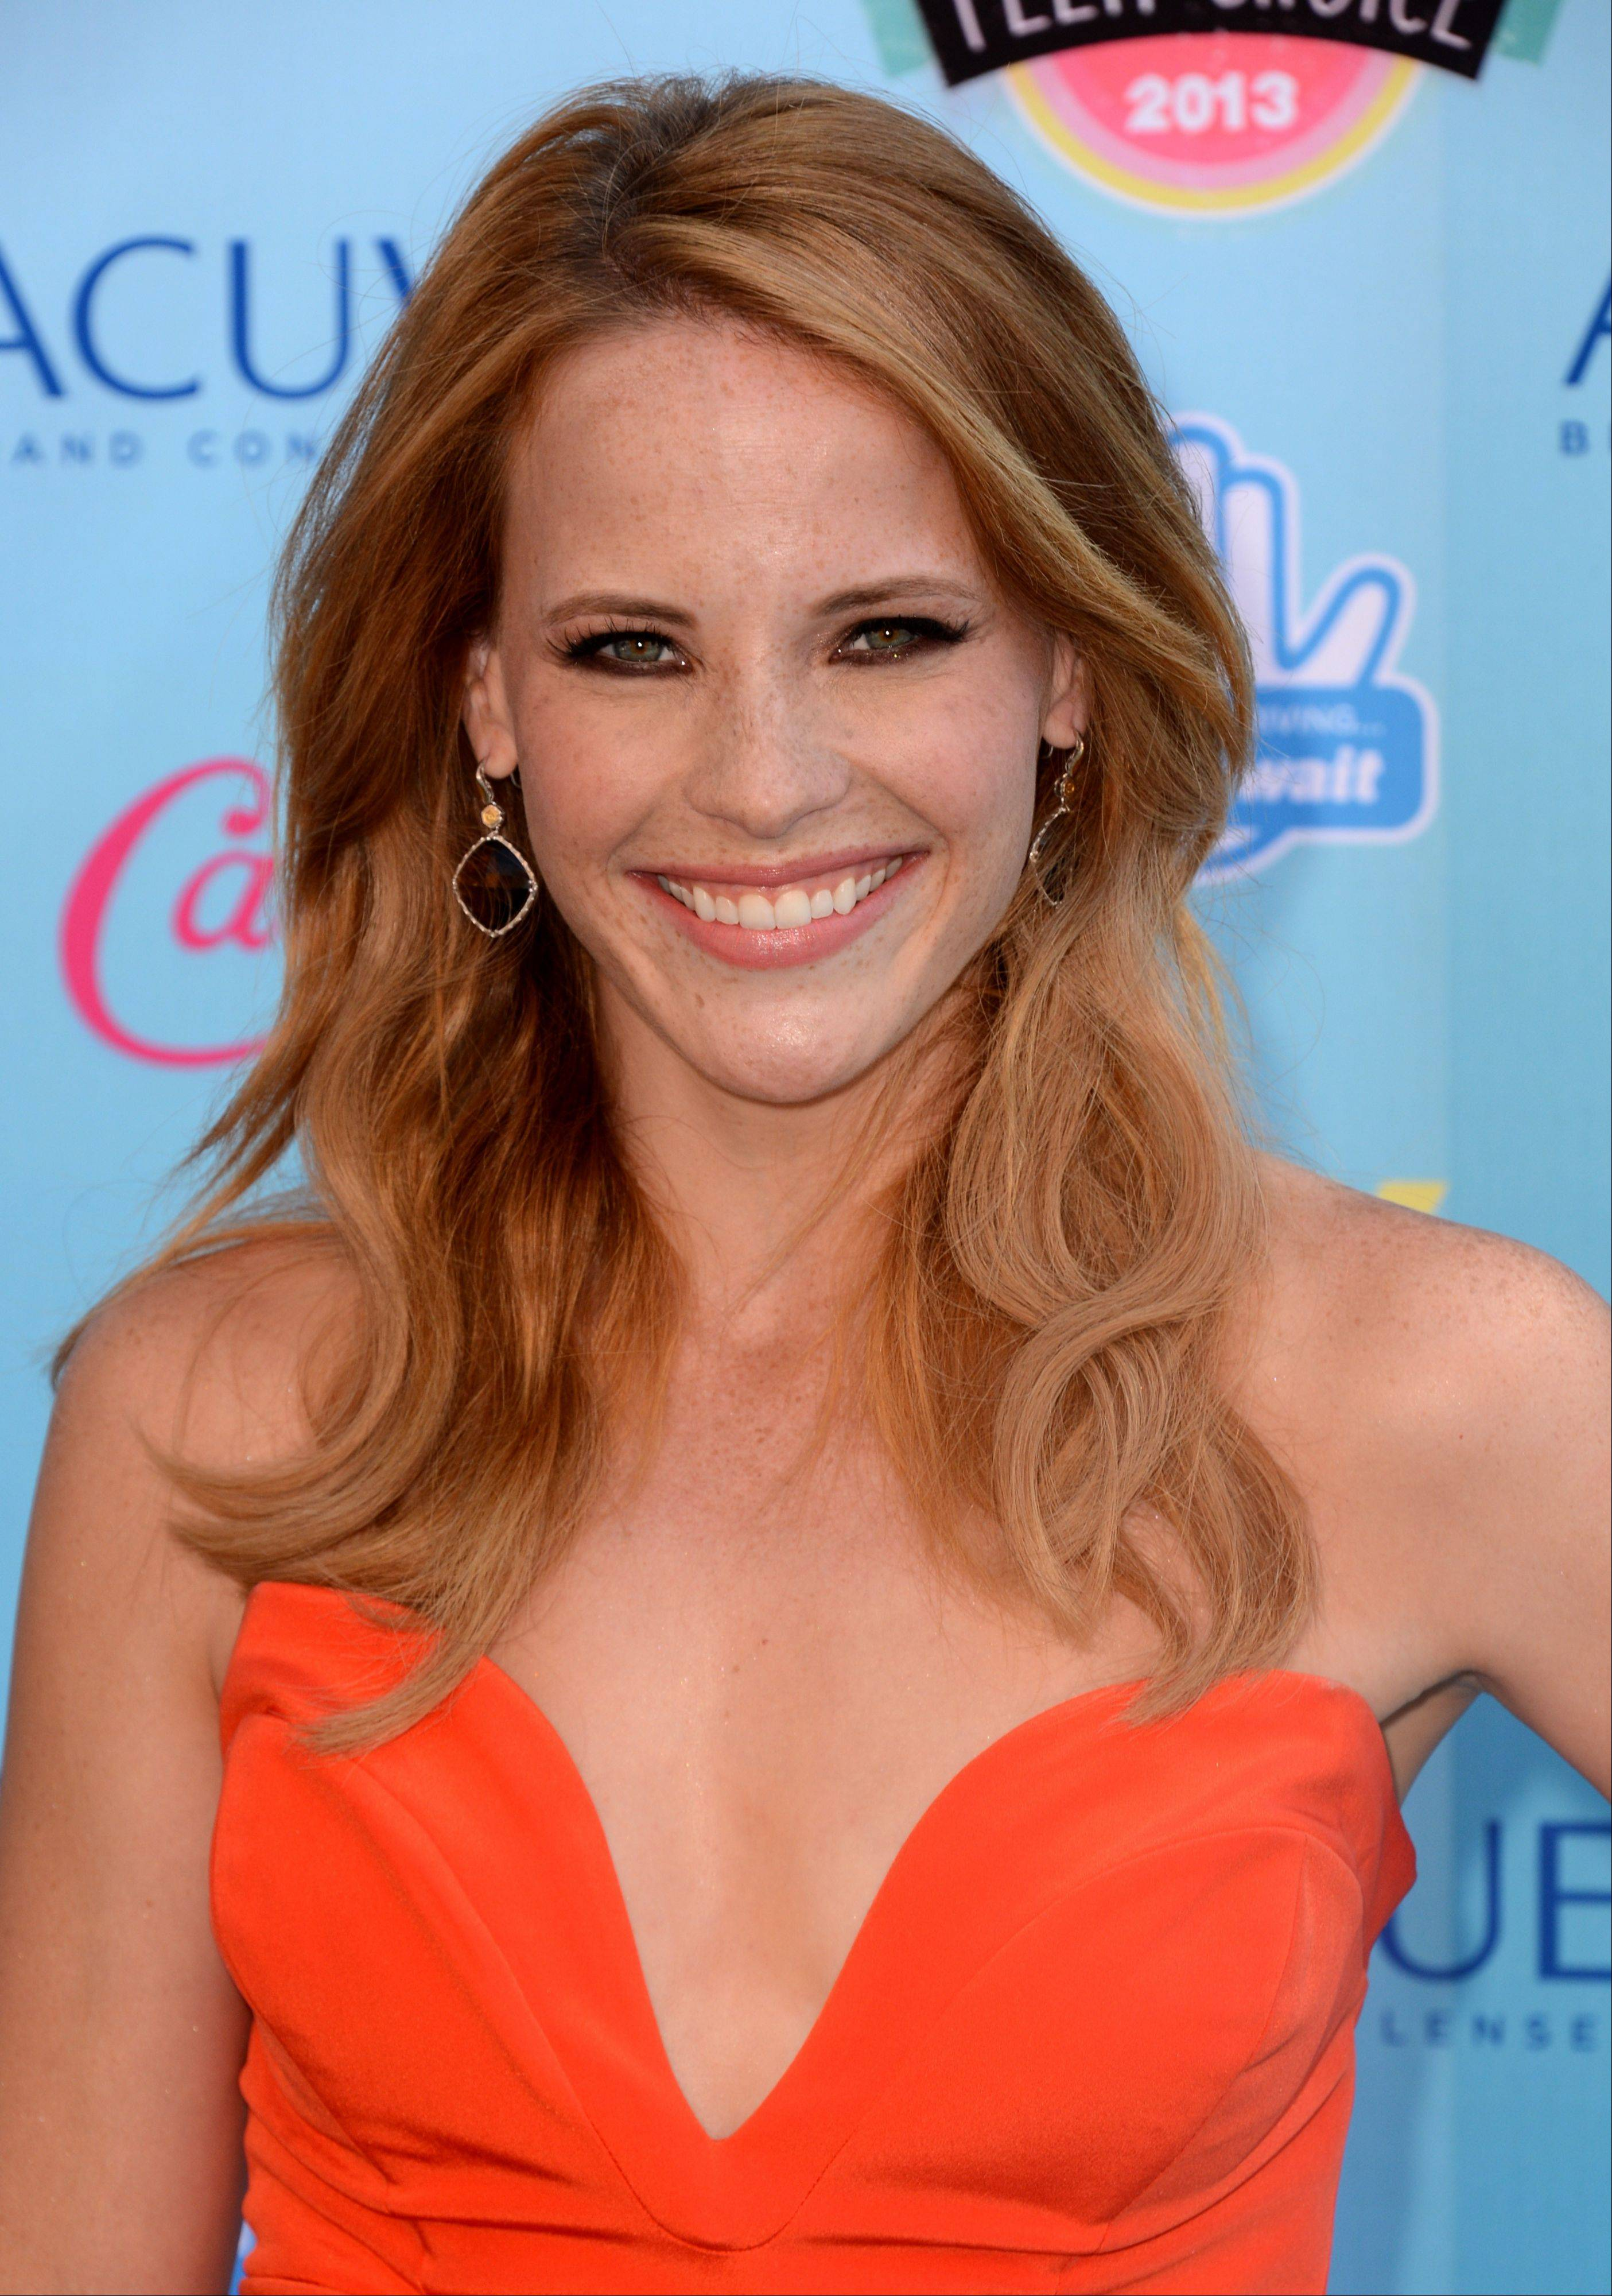 """Switched at Birth"" star Katie Leclerc arrives at the Teen Choice Awards at the Gibson Amphitheater on Sunday in Los Angeles."